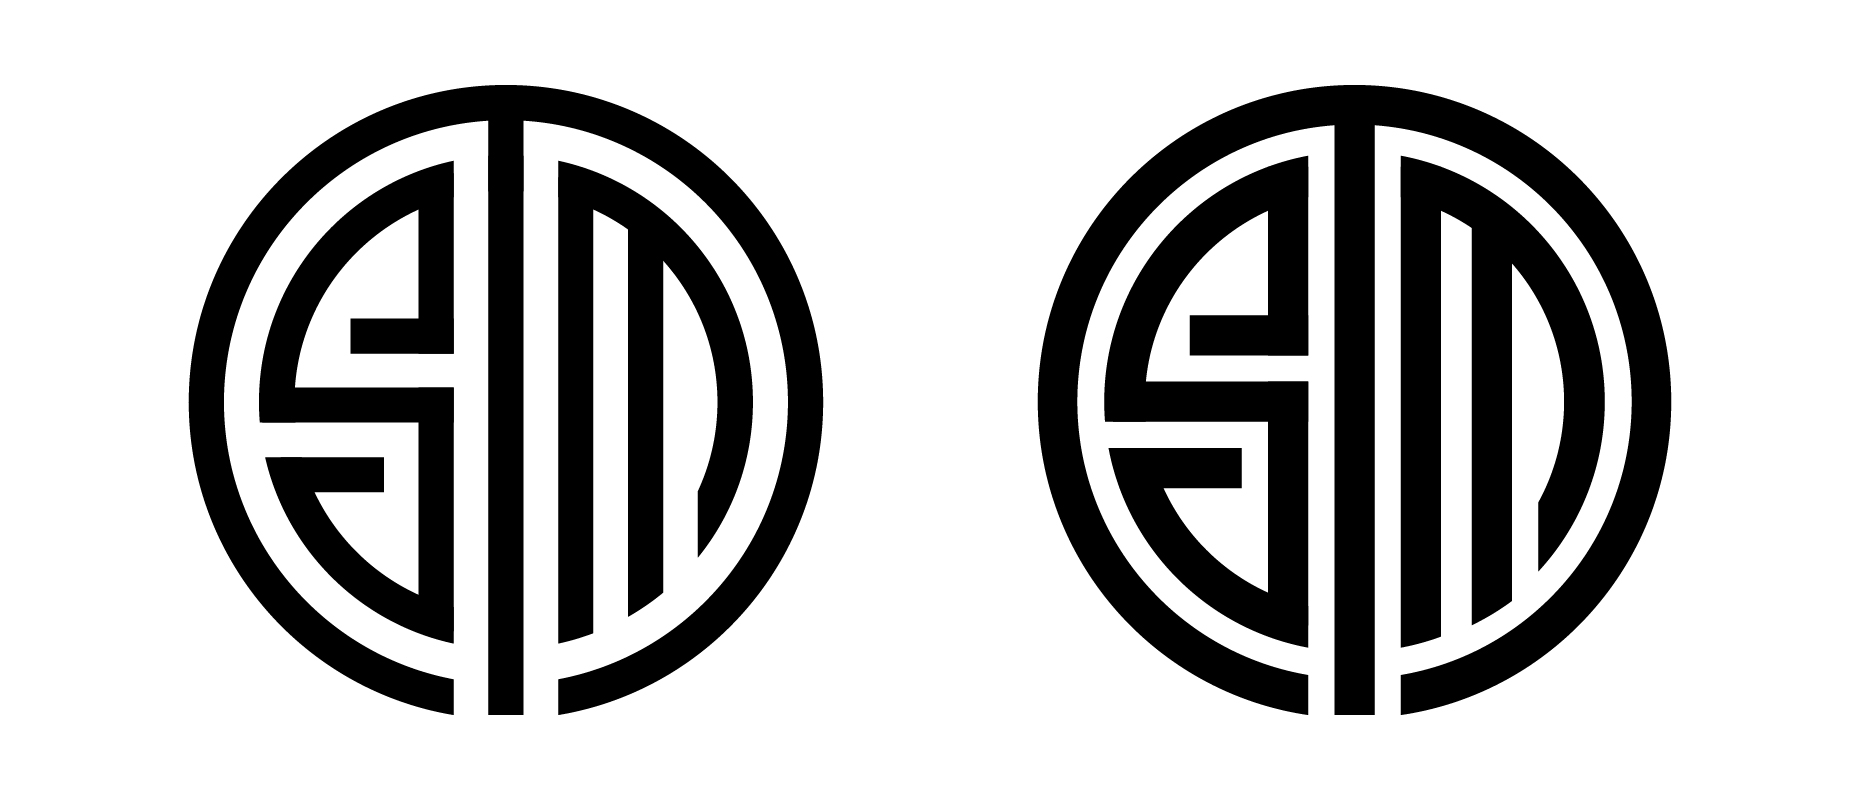 Dear Tsm What Is Your Logo Kat Whitfield Design The resolution of png image is 1000x661 and classified to ge logo ,batman logo ,star wars logo. dear tsm what is your logo kat